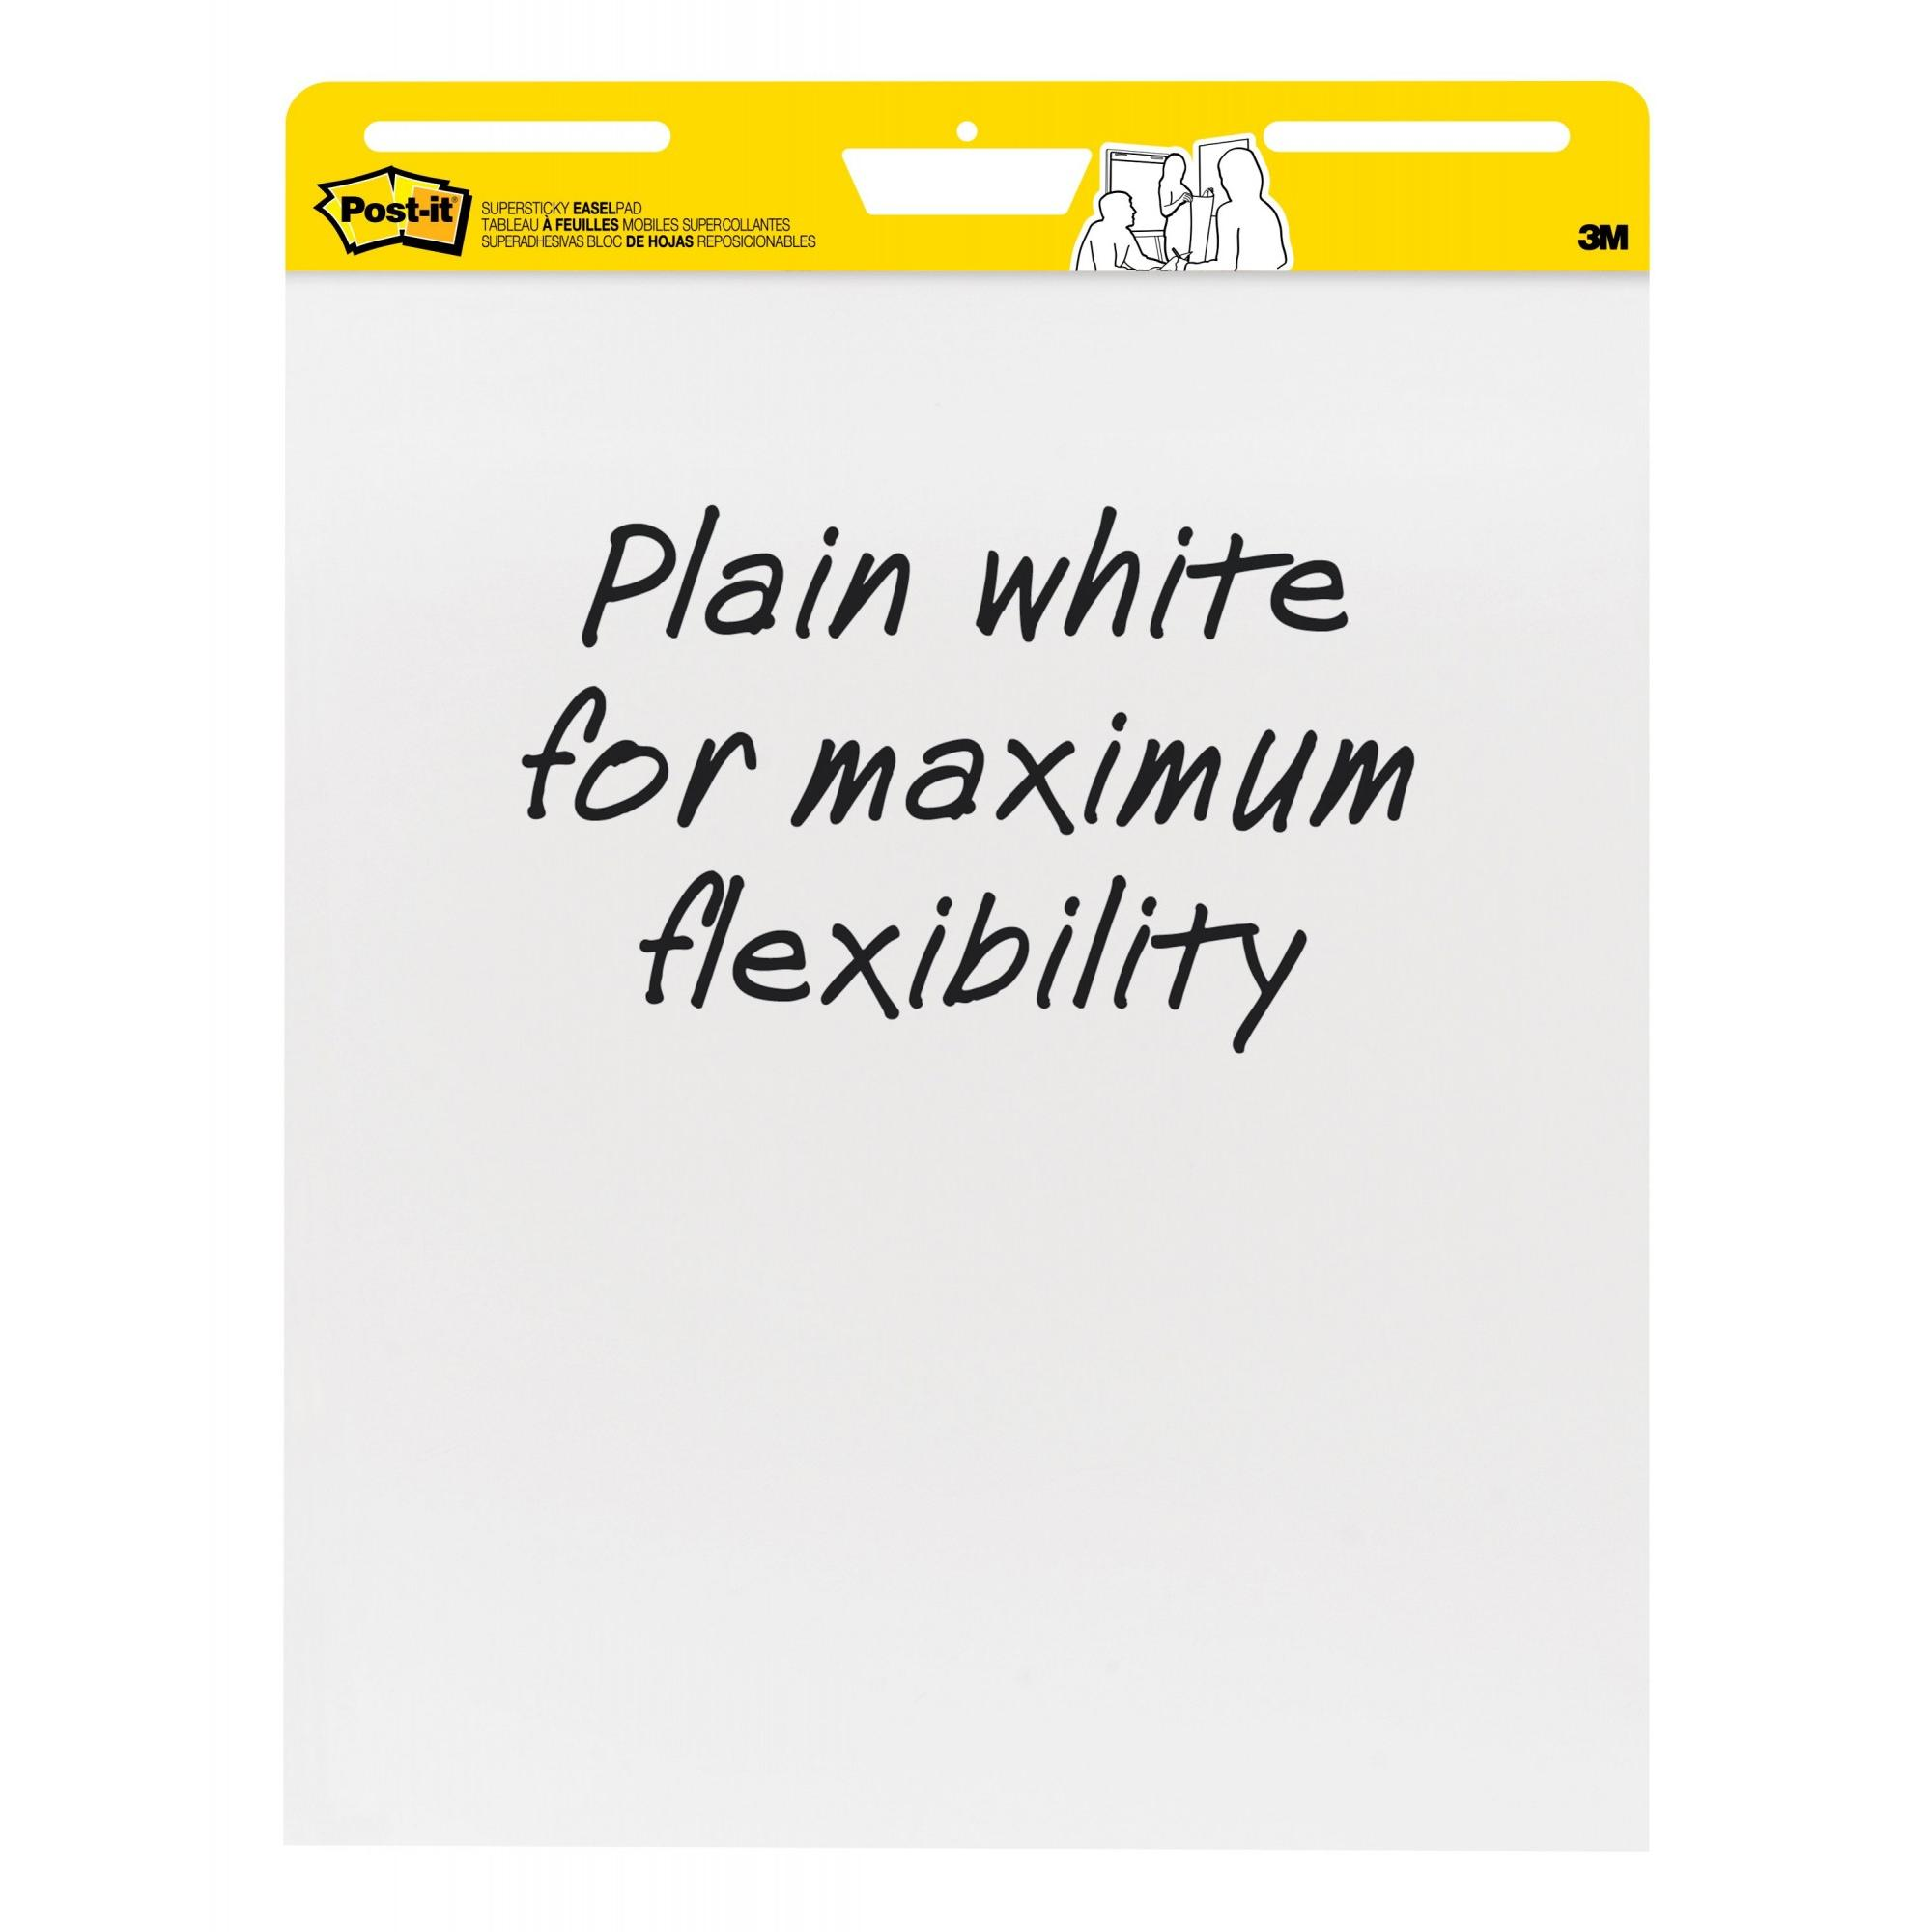 "Post-It Easel Pad, Plain White, Single Pad, 25"" x 30"" per Pad"